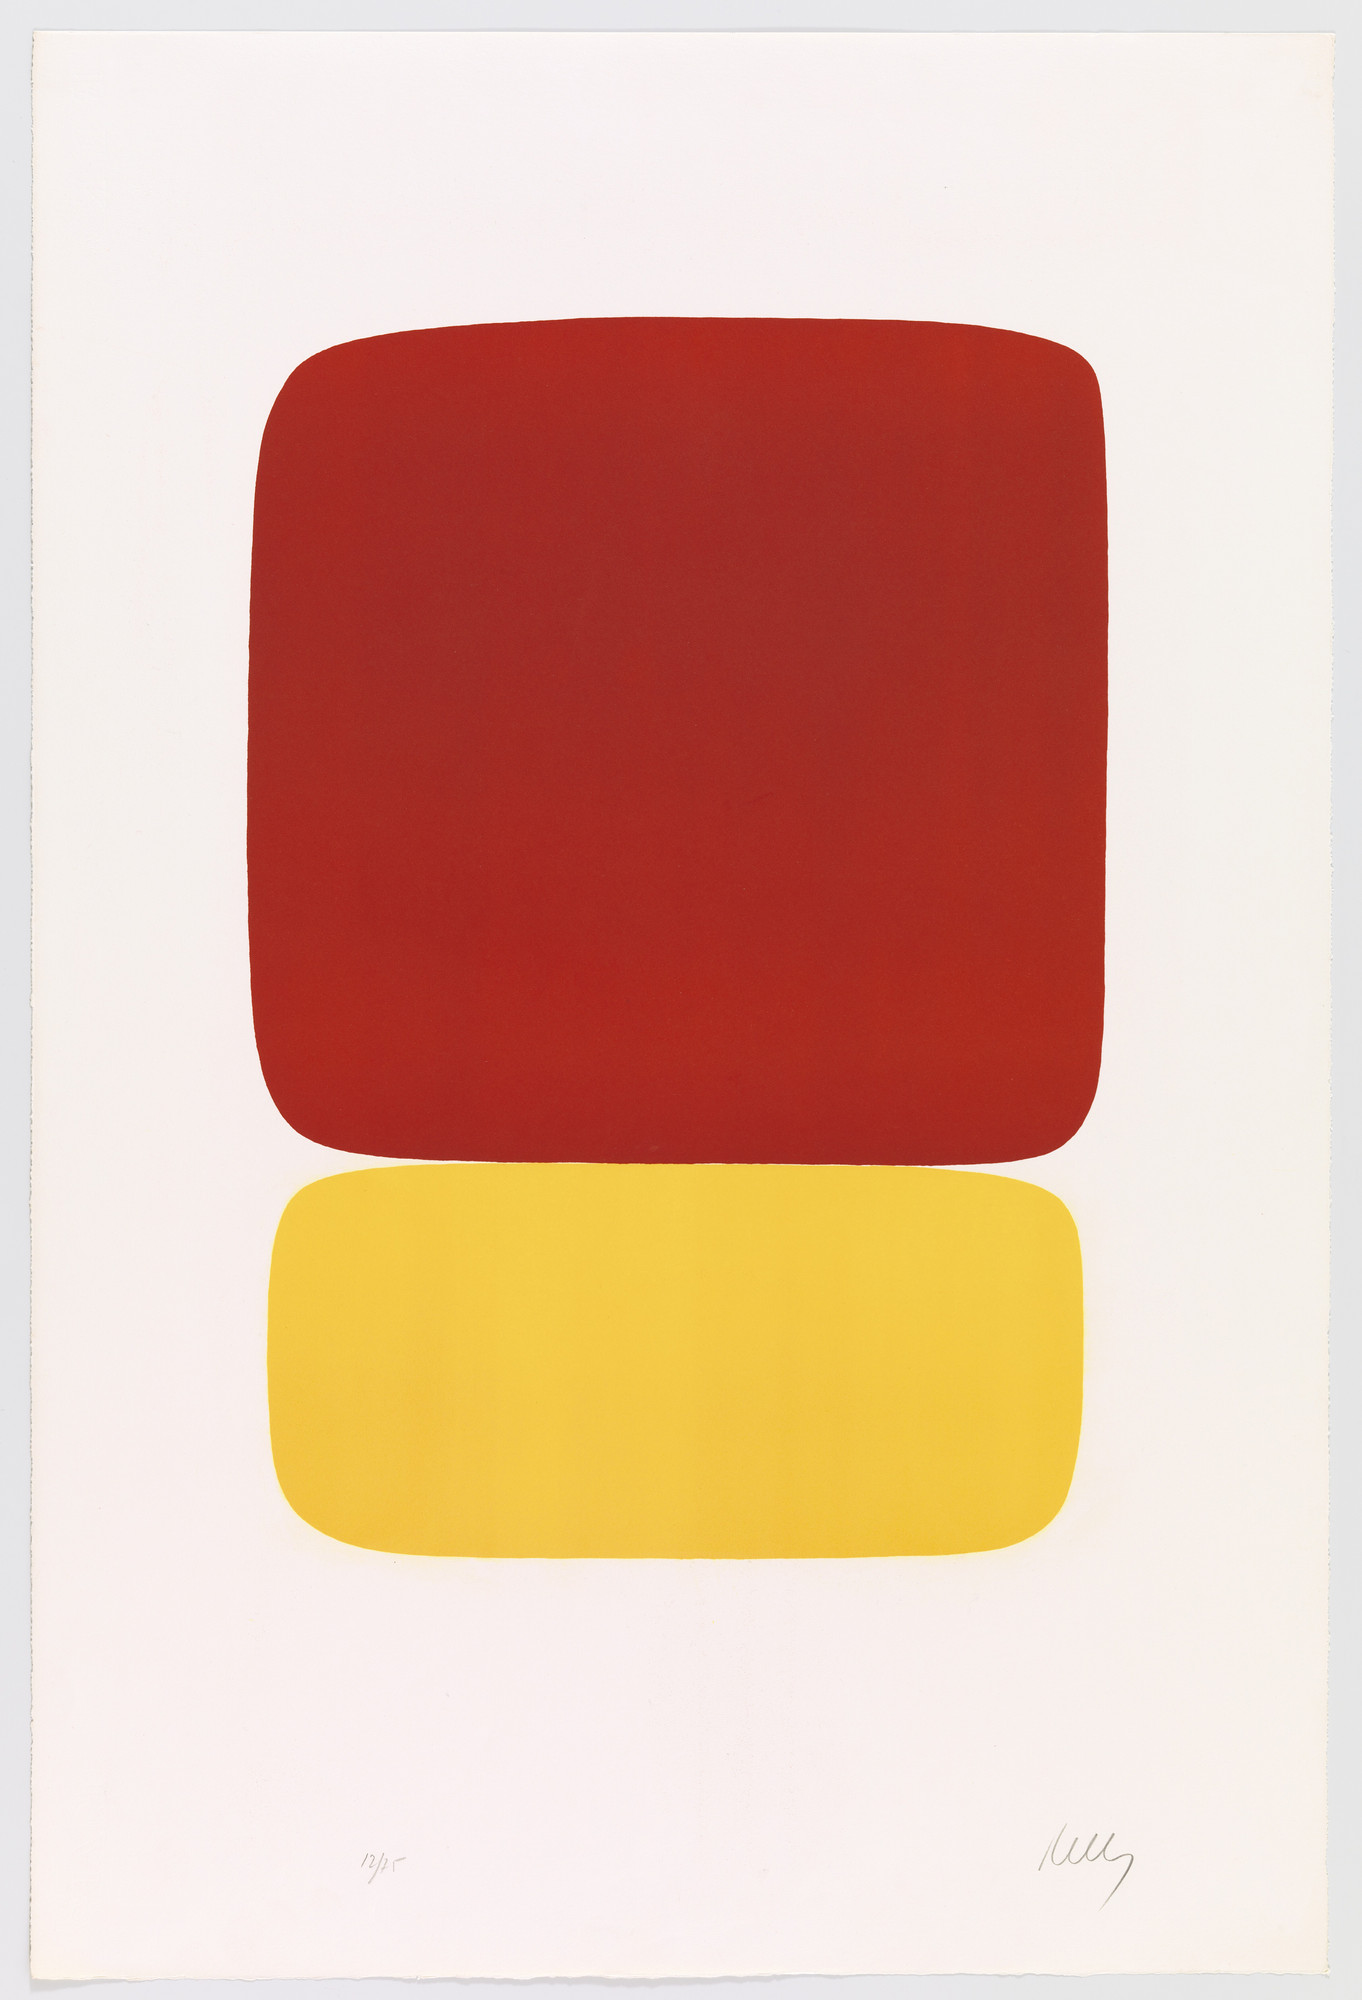 Ellsworth Kelly. Red over Yellow (Rouge sur jaune) from Suite of Twenty-Seven Color Lithographs. 1964–65